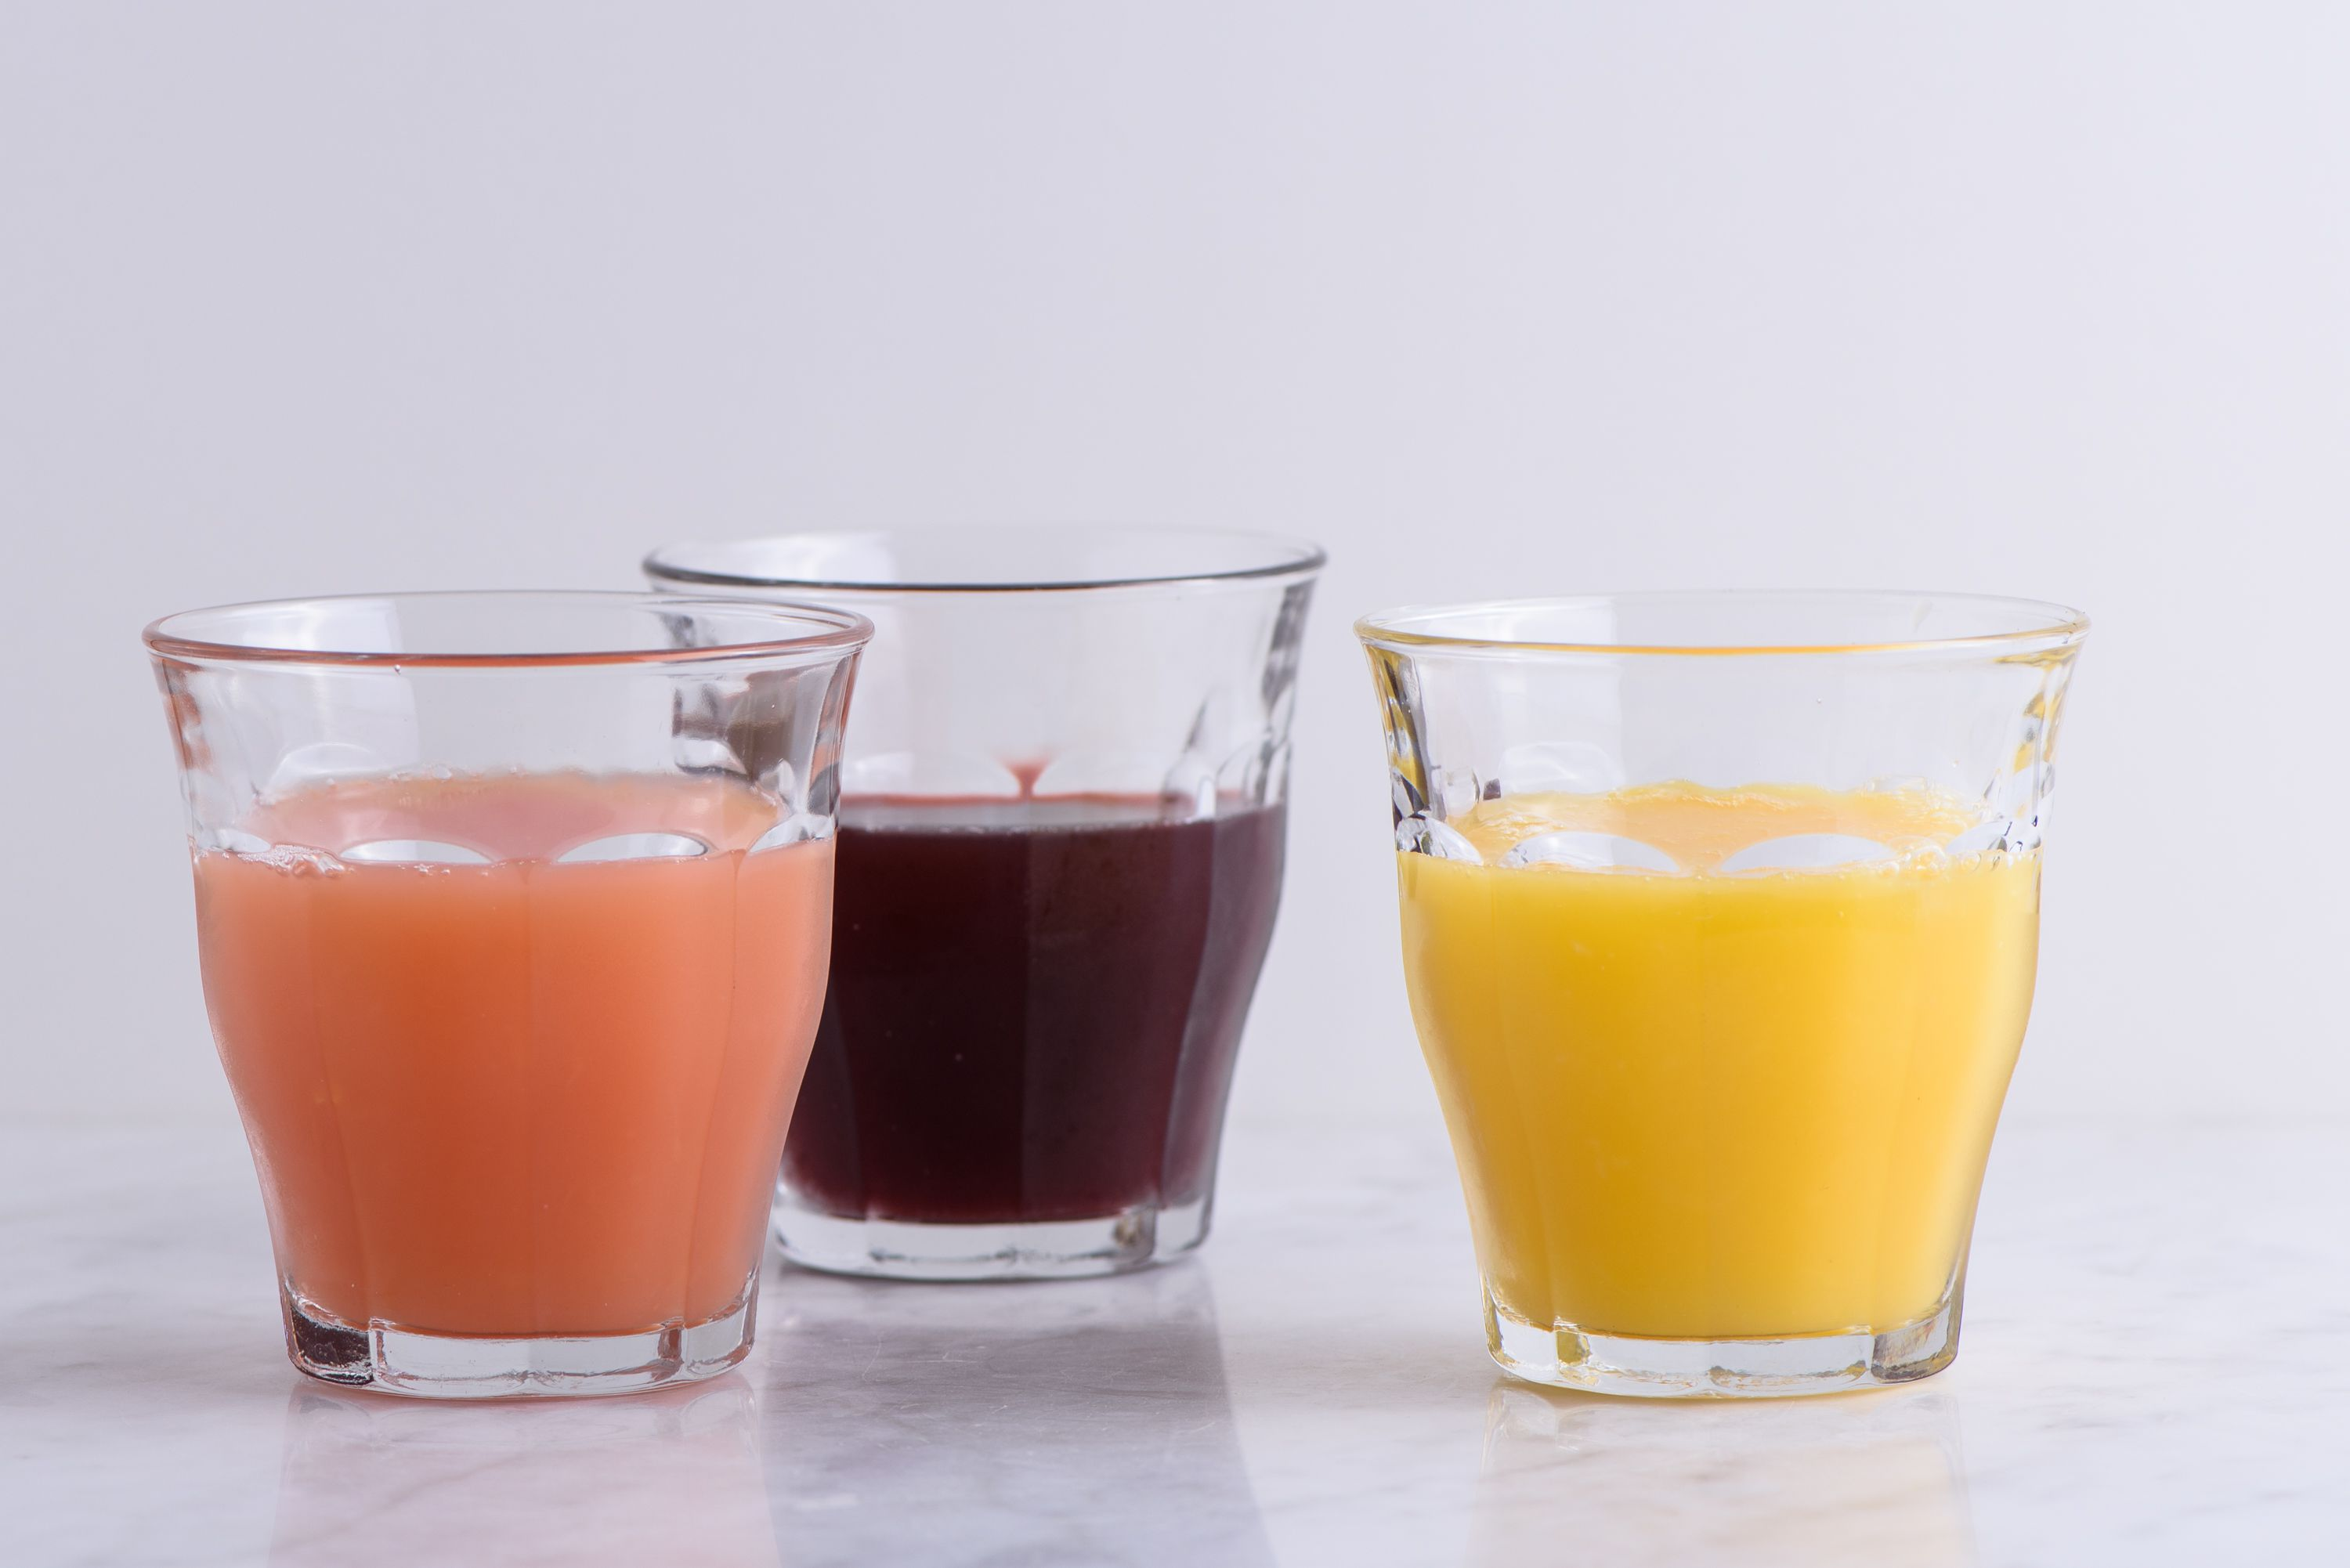 using canned or boxed juices for liquid diet